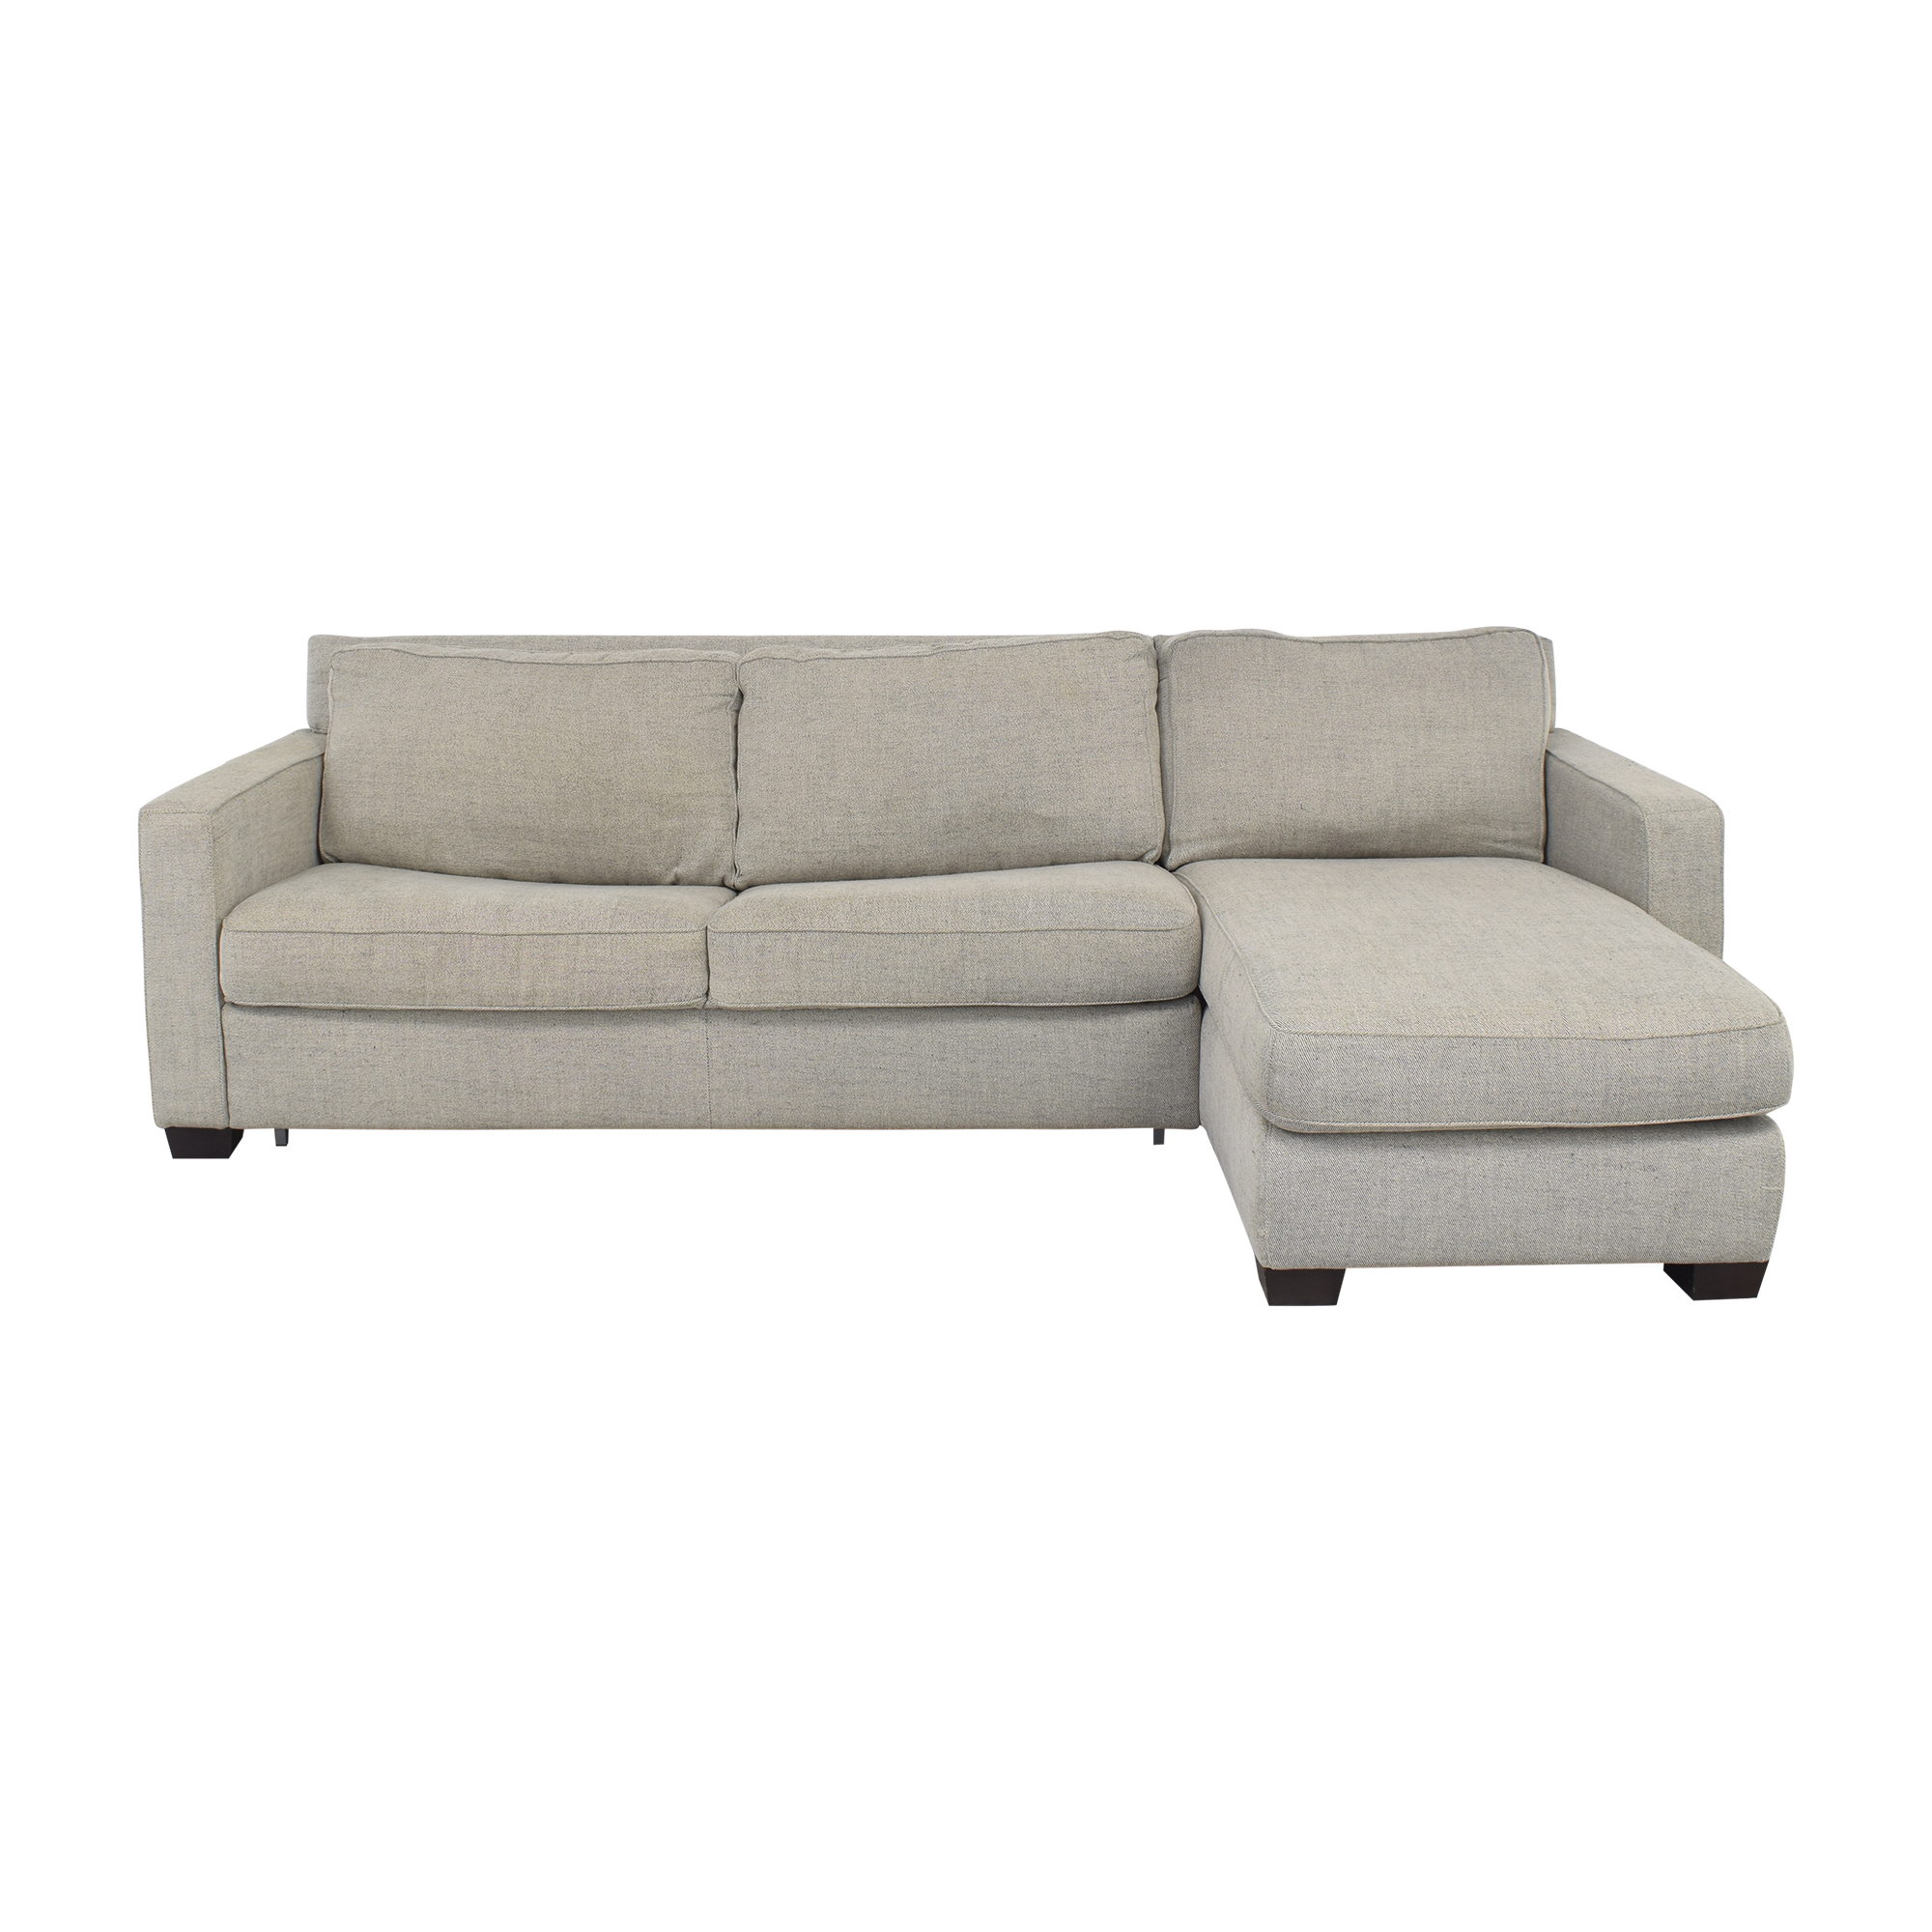 West Elm Henry 2-Piece Full Sleeper Sectional with Storage / Sofas